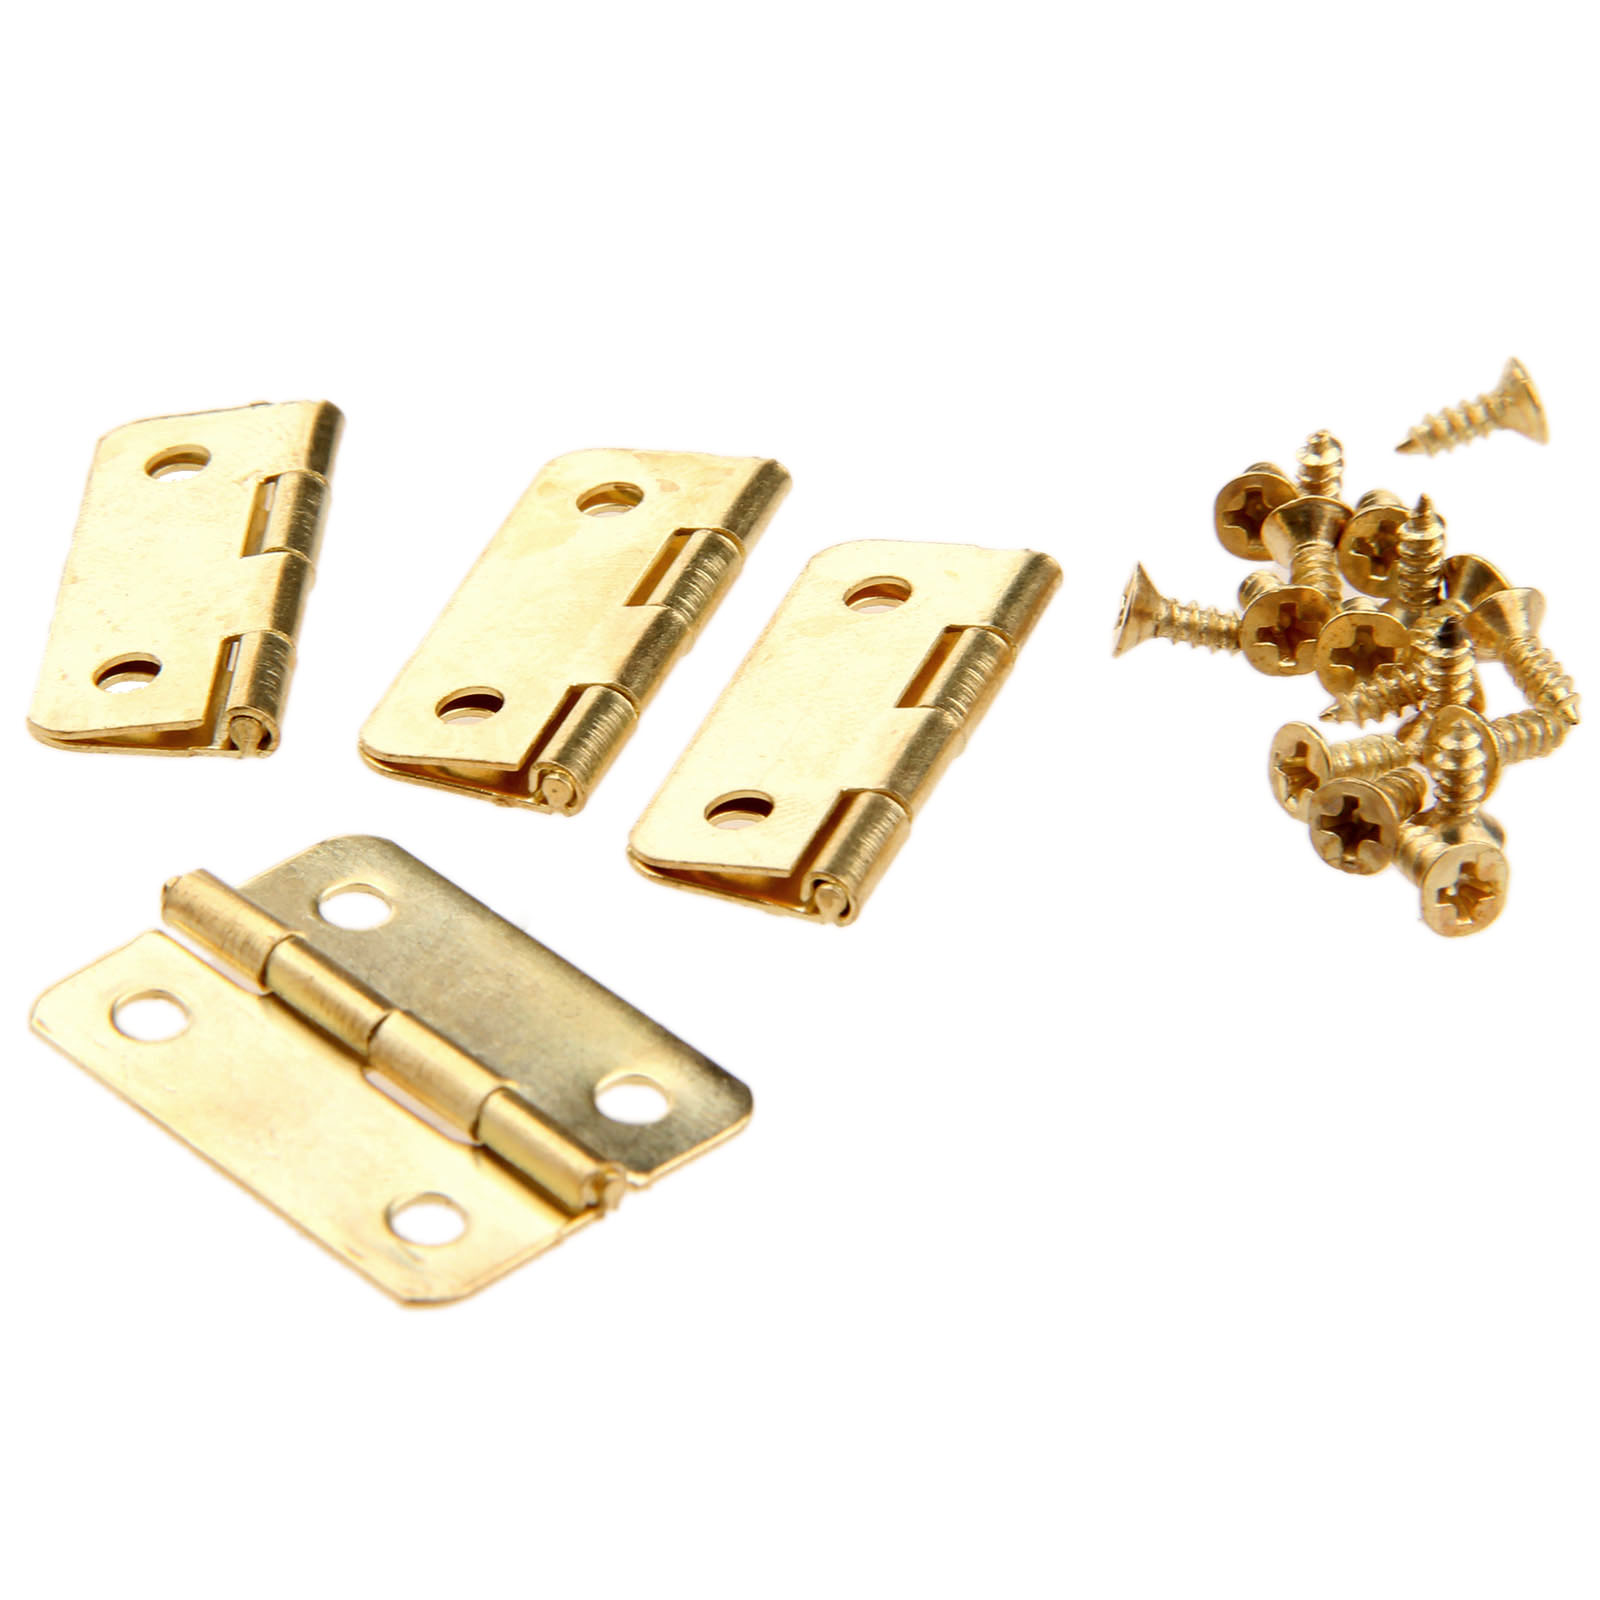 4Pcs 24x18mm 1 quot Kitchen Cabinet Door Hinges Furniture Accessories 4 Holes Gold Drawer Hinge for Jewelry Boxes Furniture Fittings in Cabinet Hinges from Home Improvement